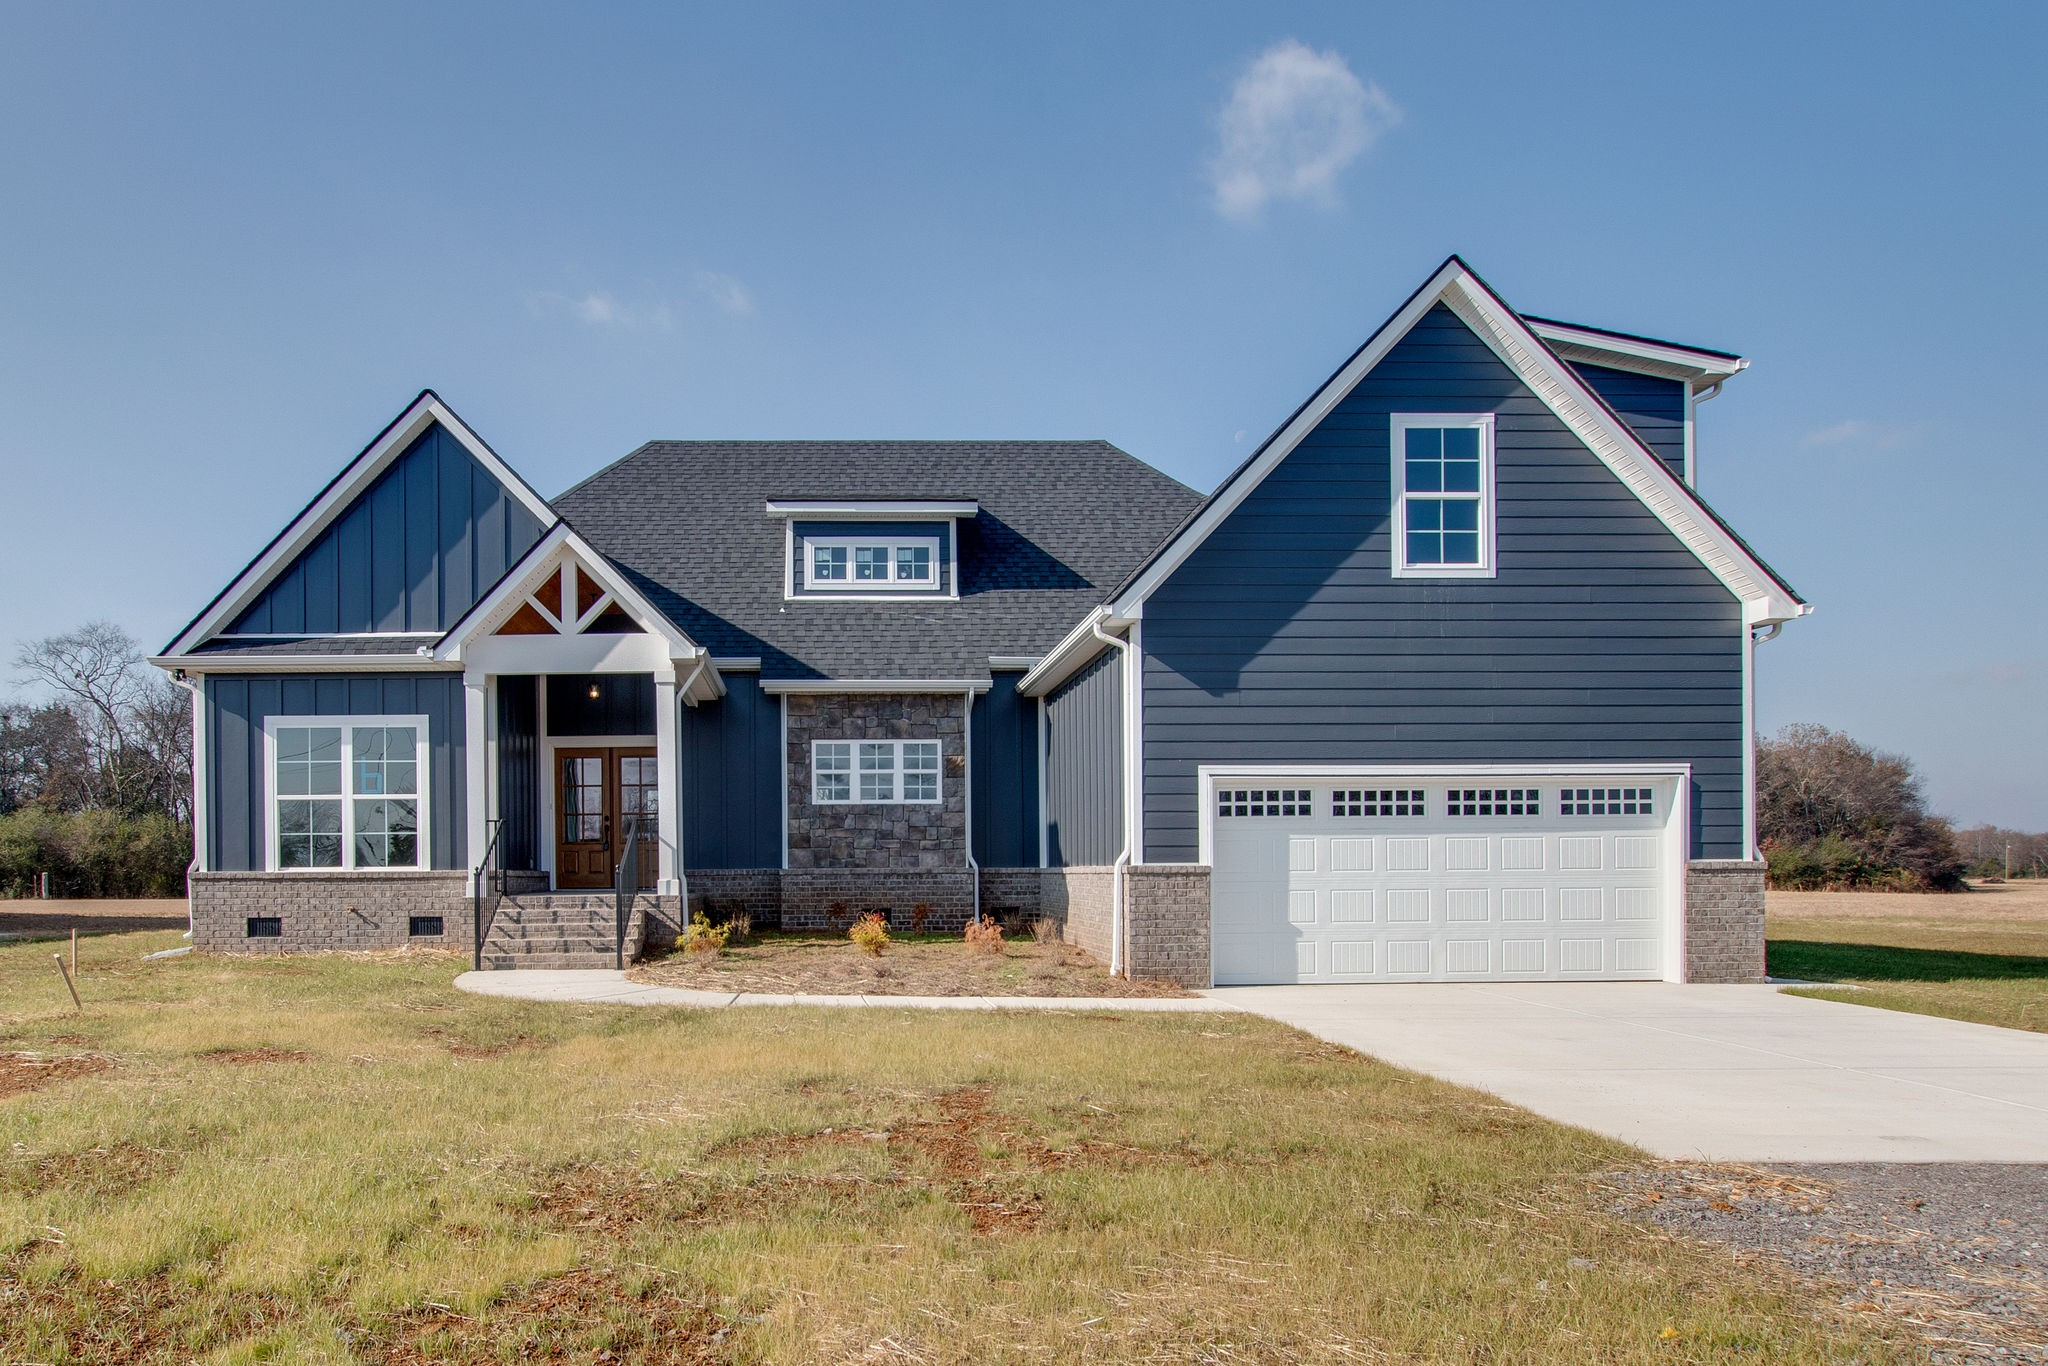 2498 Armstrong Valley Rd (Lot 6, Murfreesboro, TN 37128 - Murfreesboro, TN real estate listing